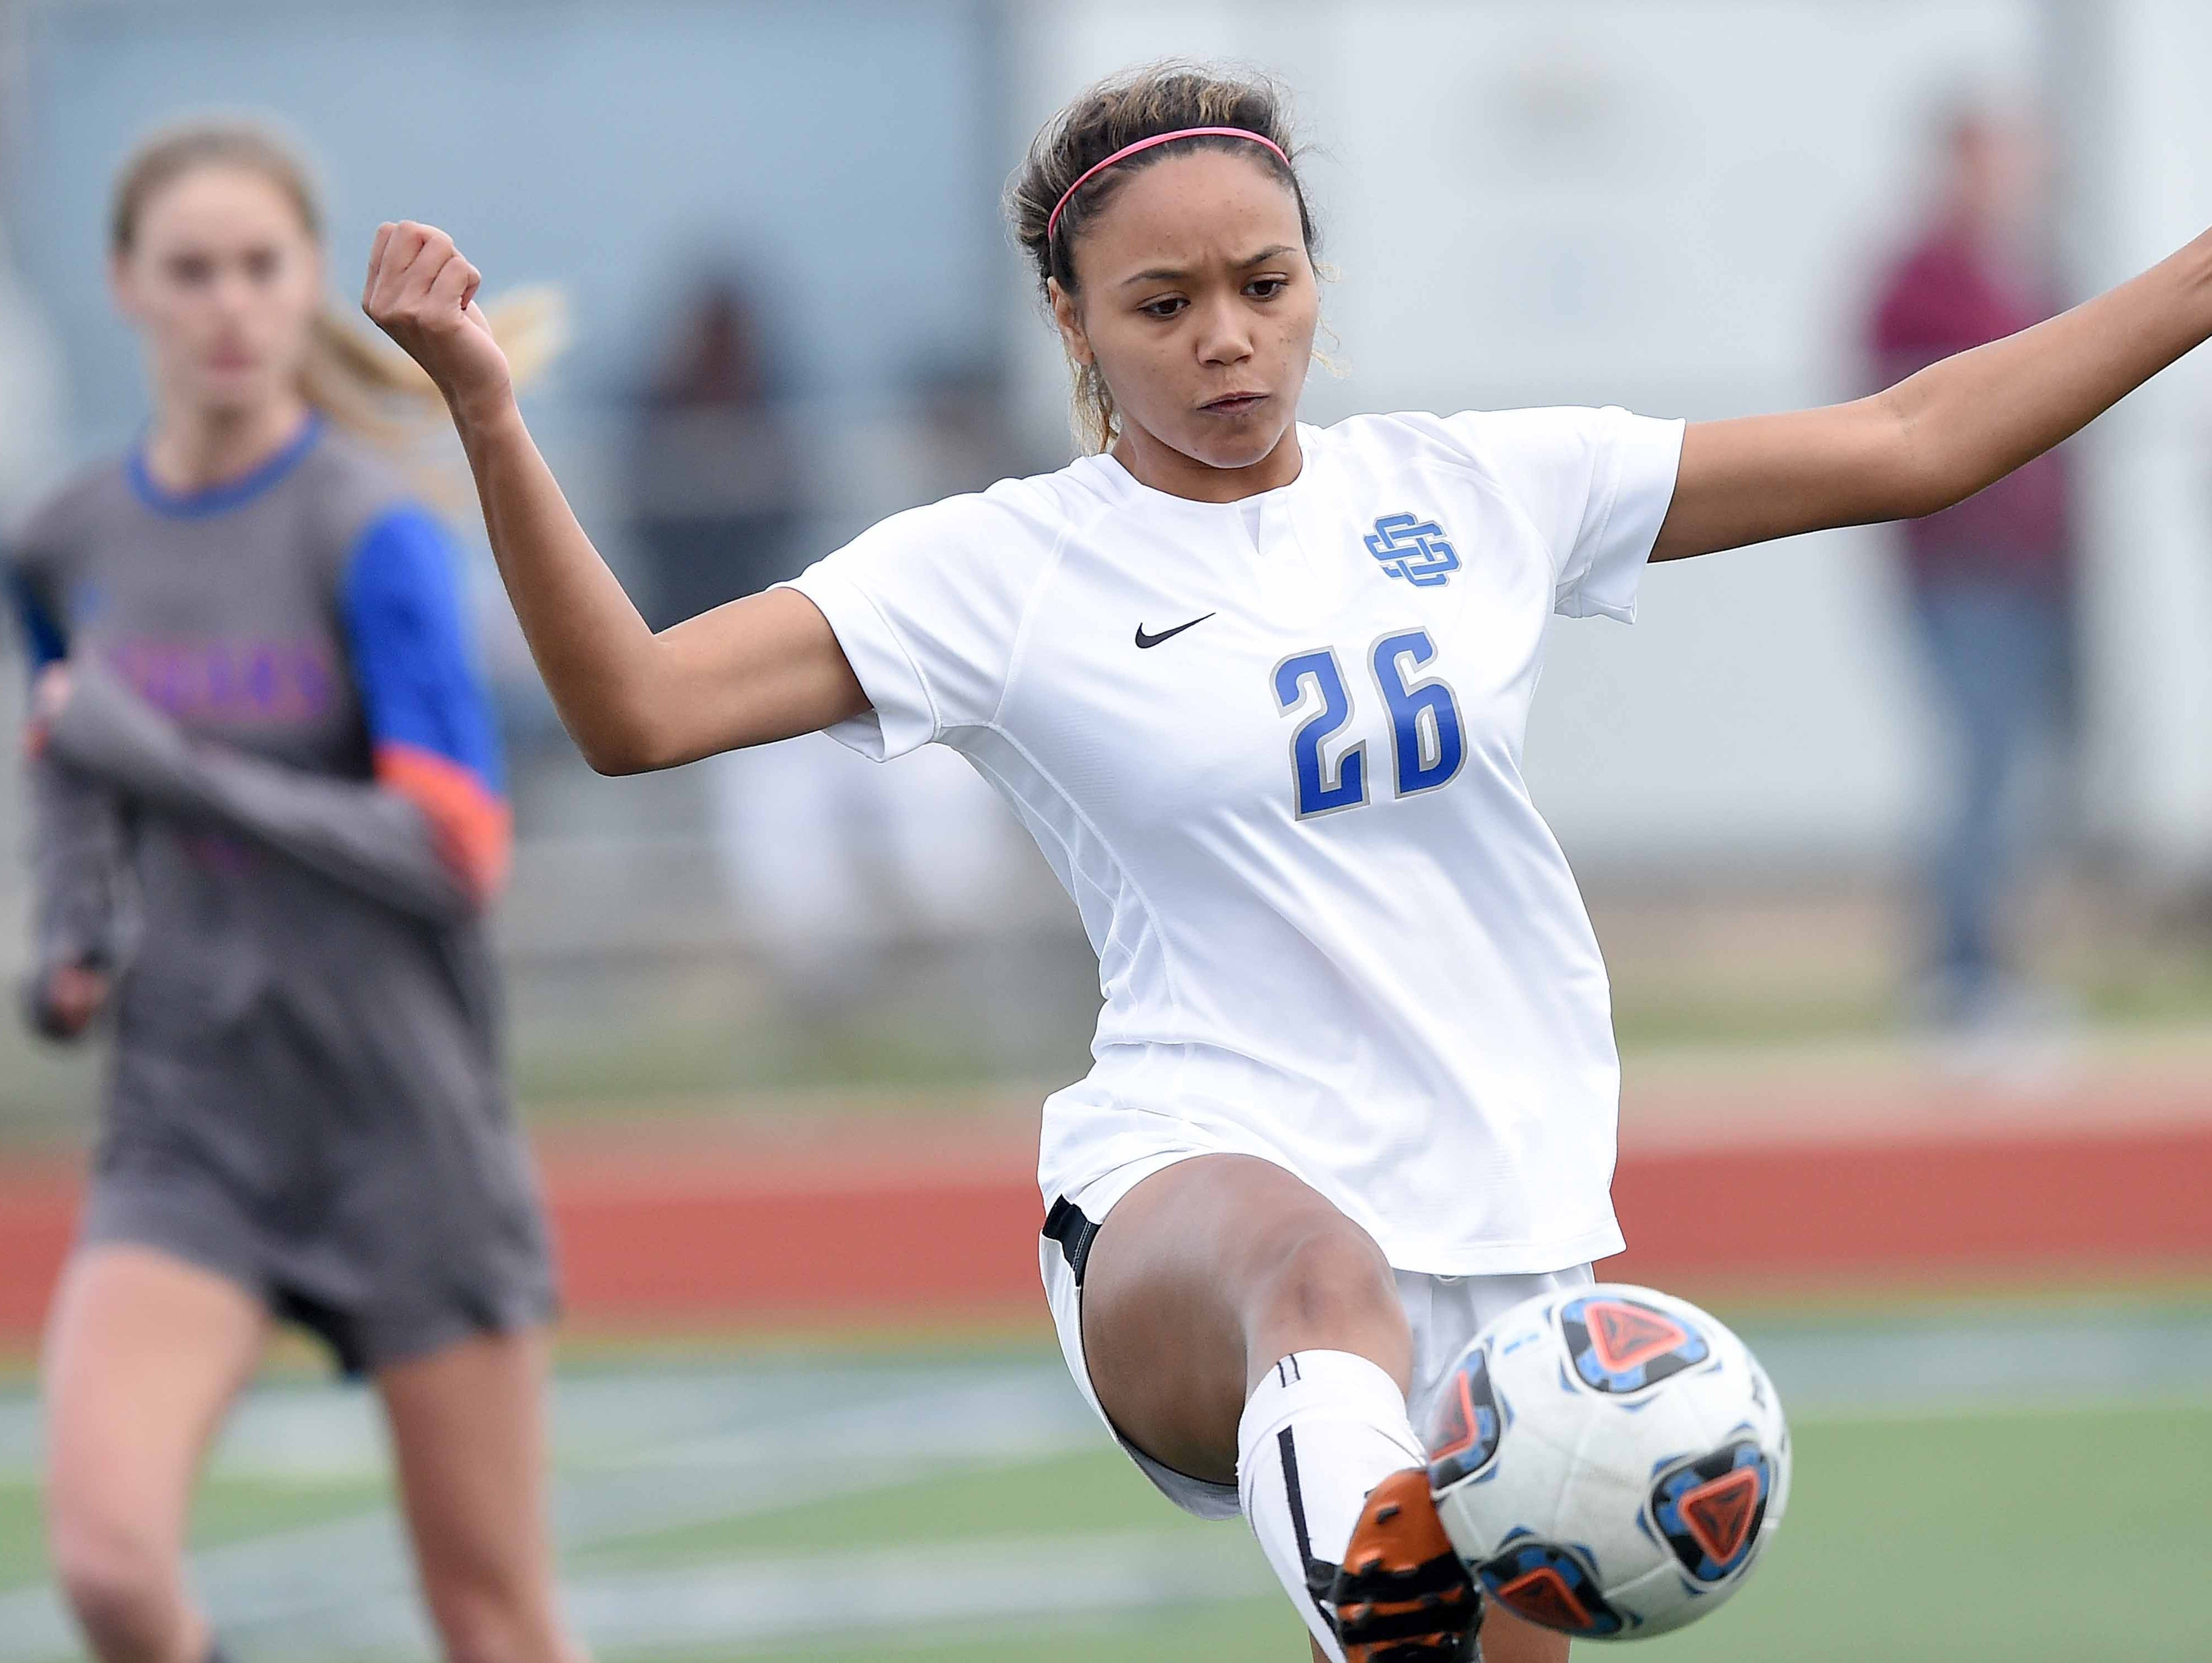 Ocean Springs' Ameris Taylor (26) stops a high pass near midfield in the Class 6A state championship in the MHSAA BlueCross Blue Shield of Mississippi Soccer Classic on Saturday, February 9, 2019, at Ridgeland High School in Ridgeland, Miss.